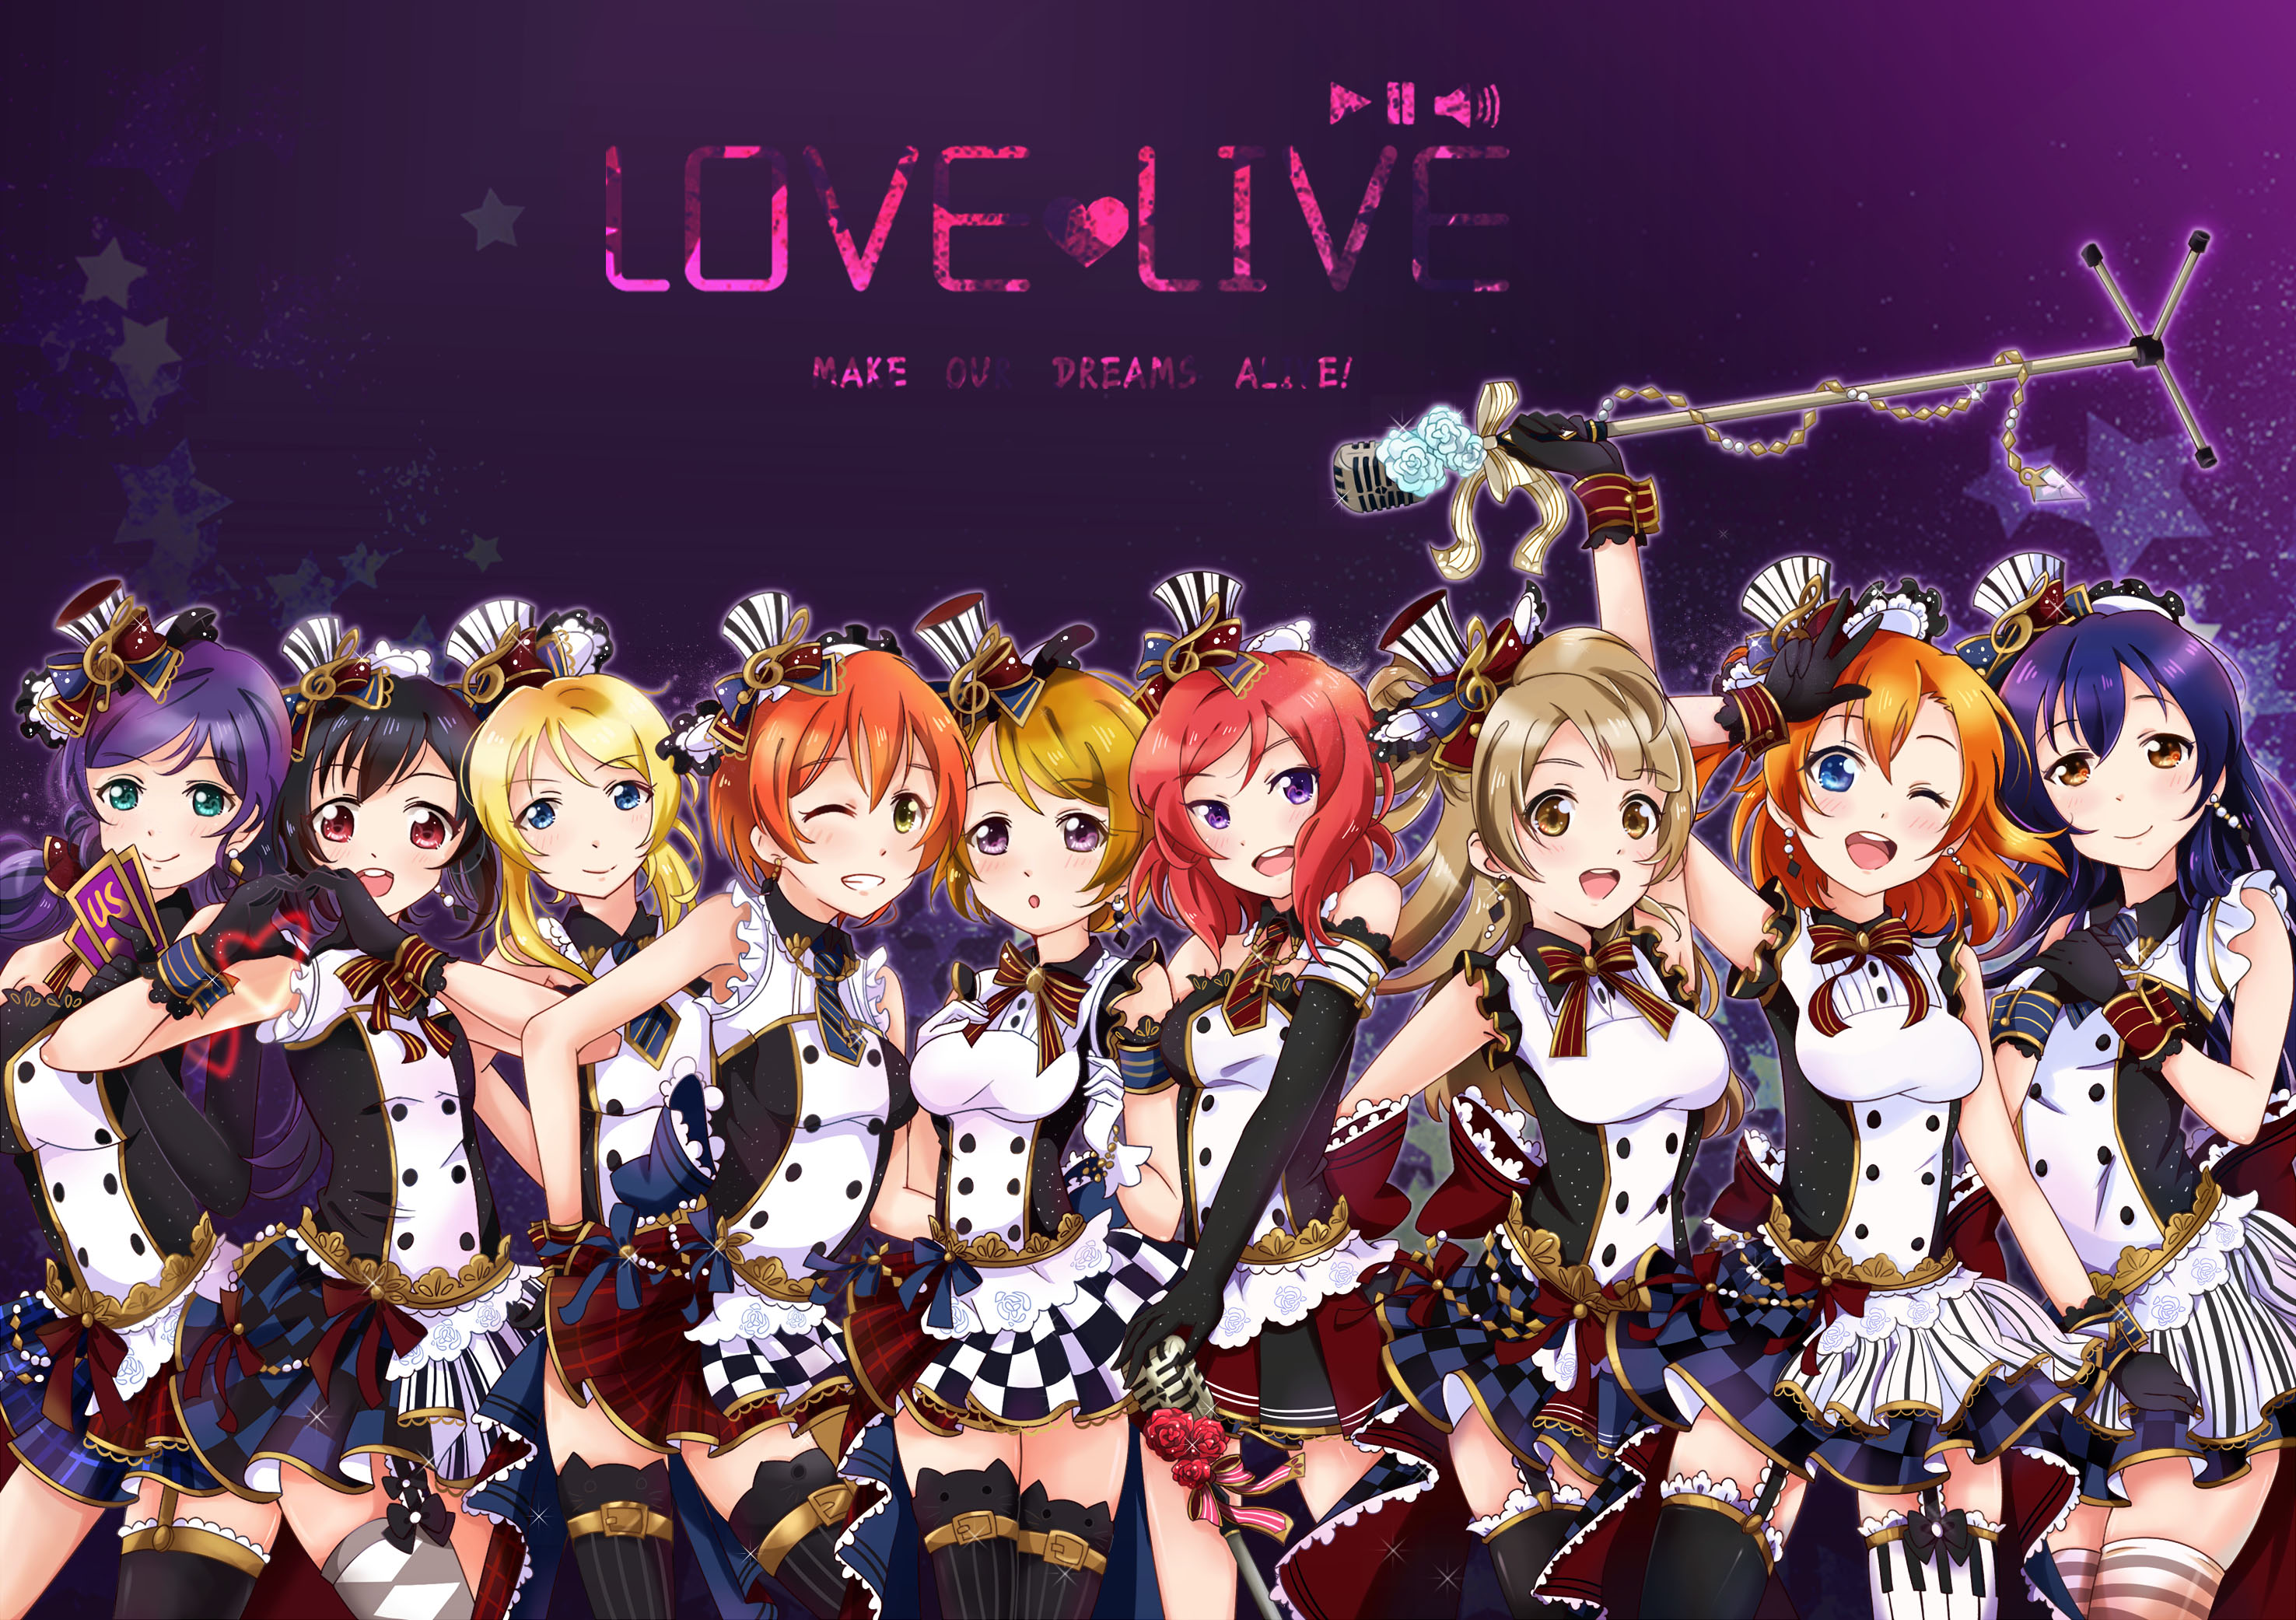 Live Wallpaper Of Love For Pc : Love Live! Wallpaper 27 BuyninJapan BLOG